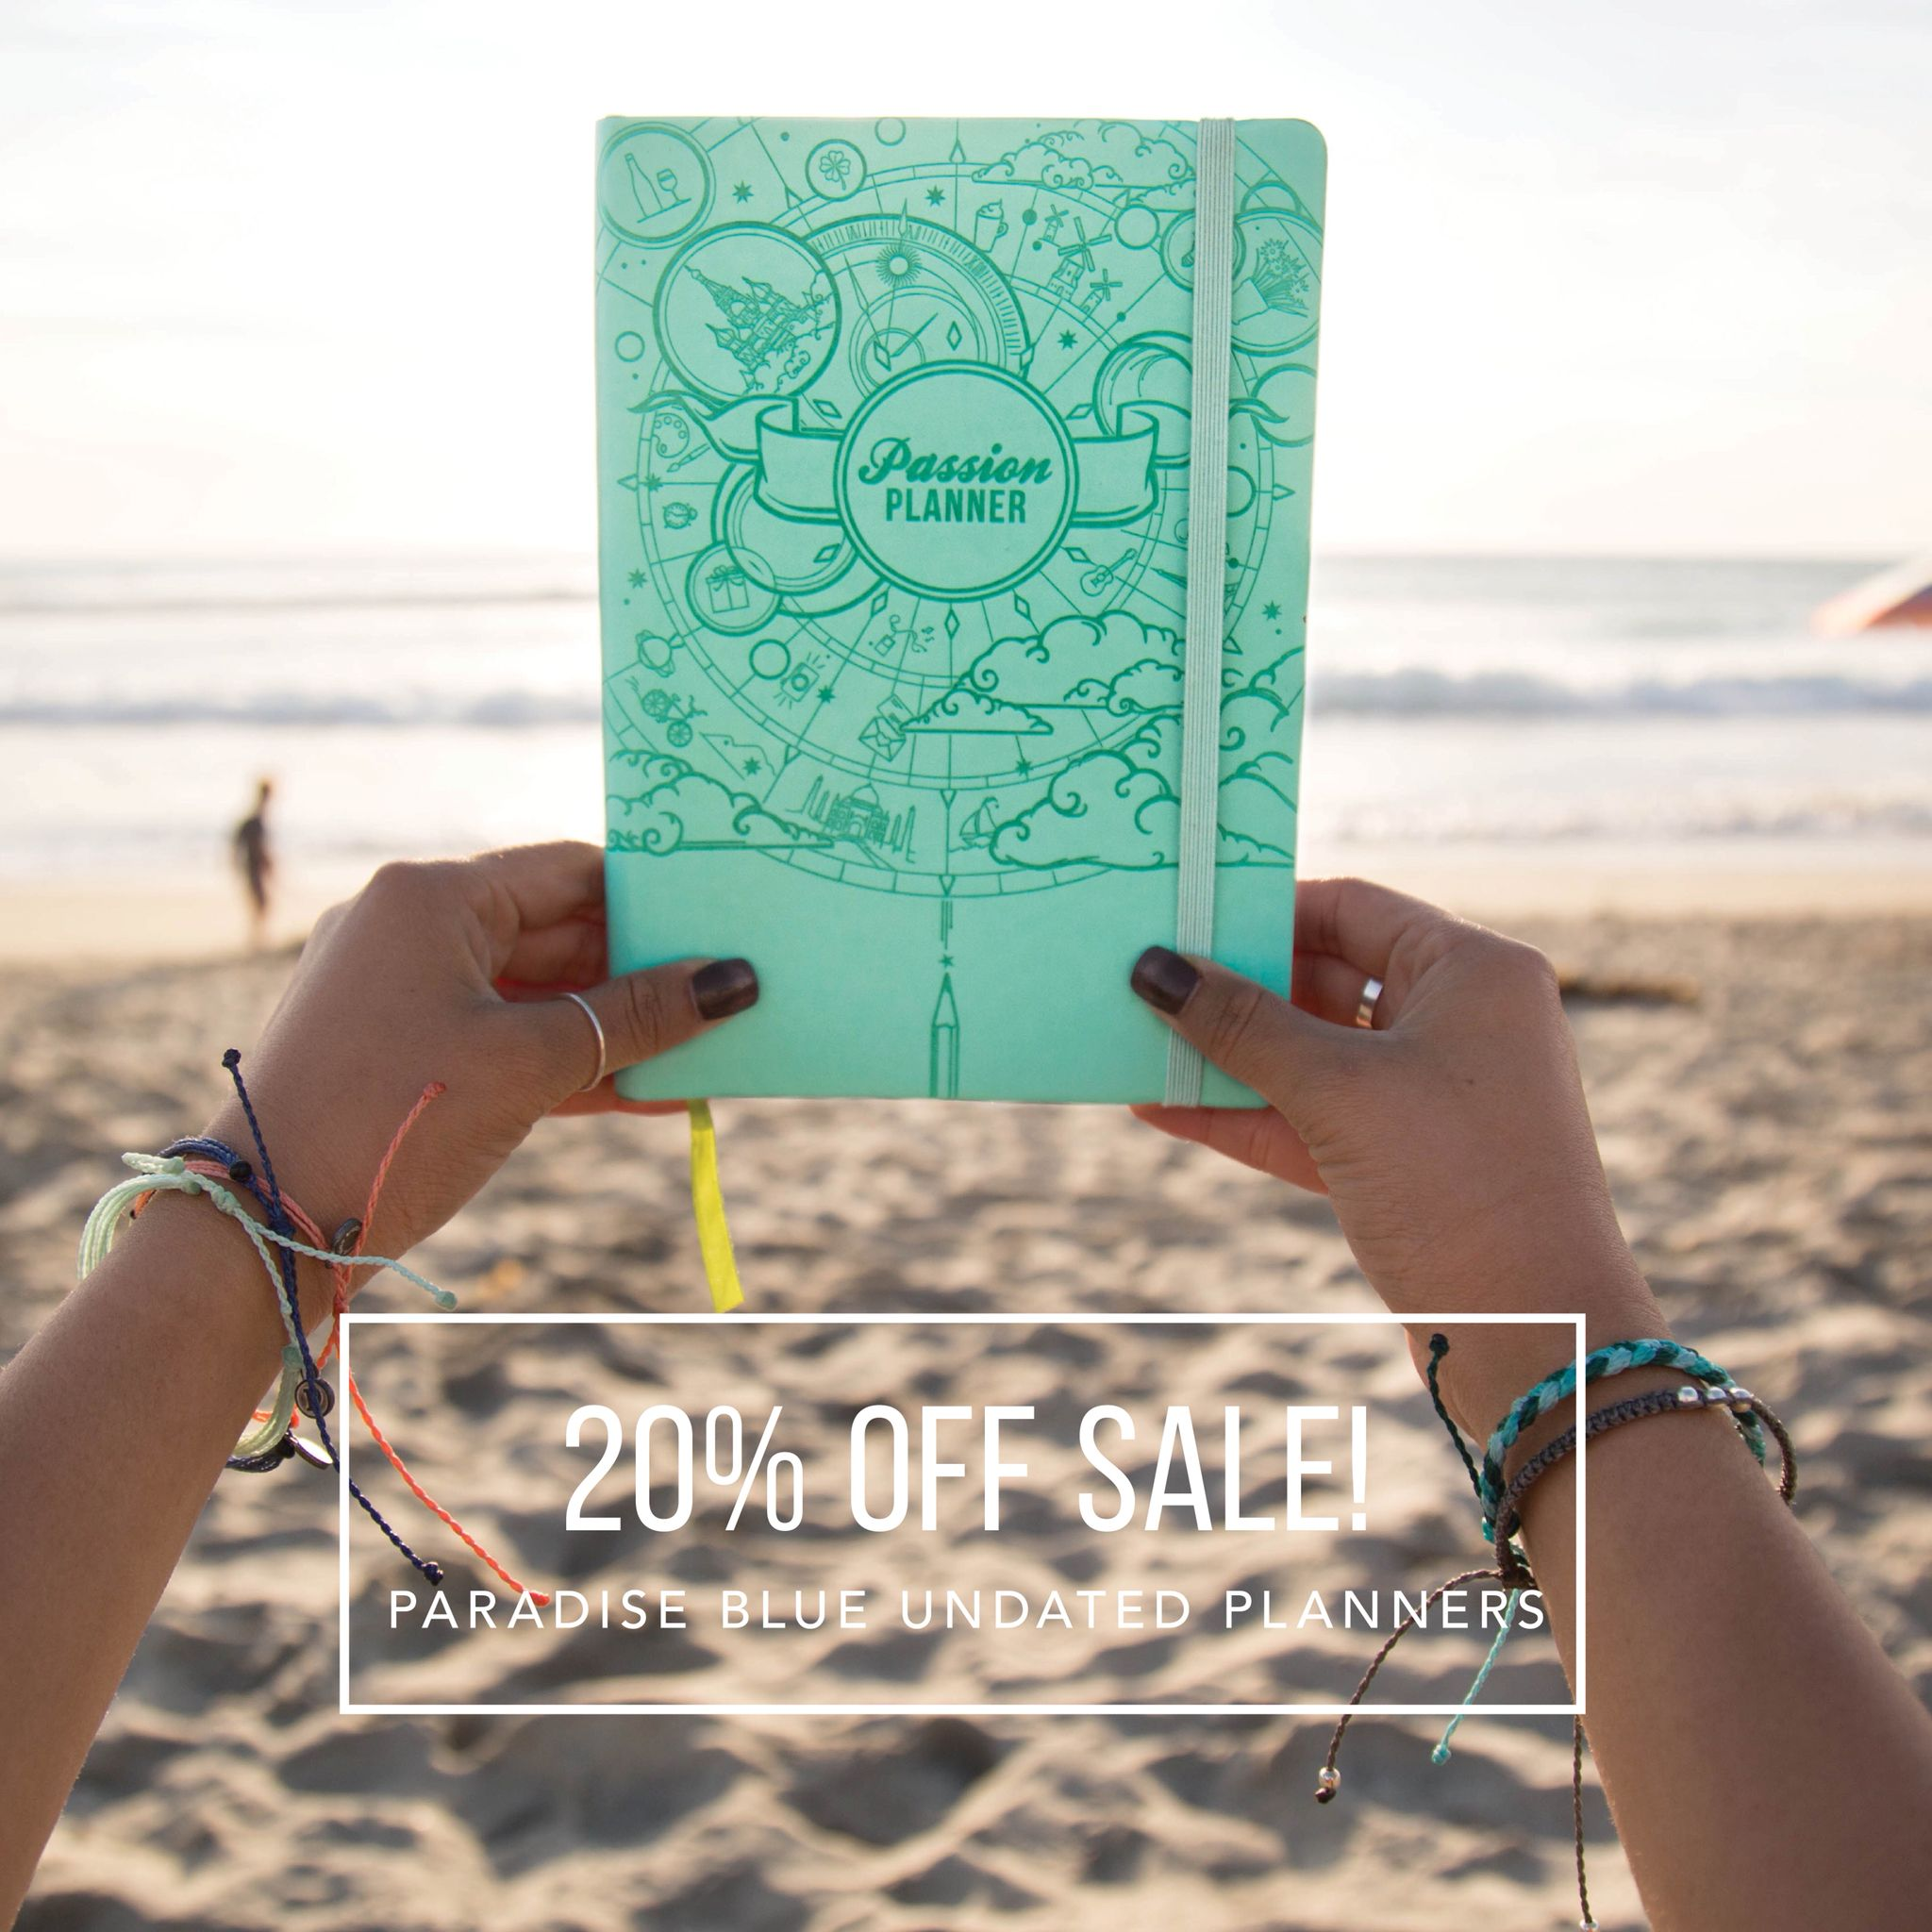 We have a little summer ☀️ treat  for you guys! 20% OFF SALE FOR ALL PARADISE BLUE  LIMITED EDITIONS ! Get them before they are gone!  - … DOUBLE SURPRISE !!! We are also offering 50% OFF ALL TIMELESS BLACK 2016 PASSION PLANNERS  while surprise lasts!  - Link: http://bit.ly/20C0udO  - #passionplanner #puravida #plannerlife #sale #summertime